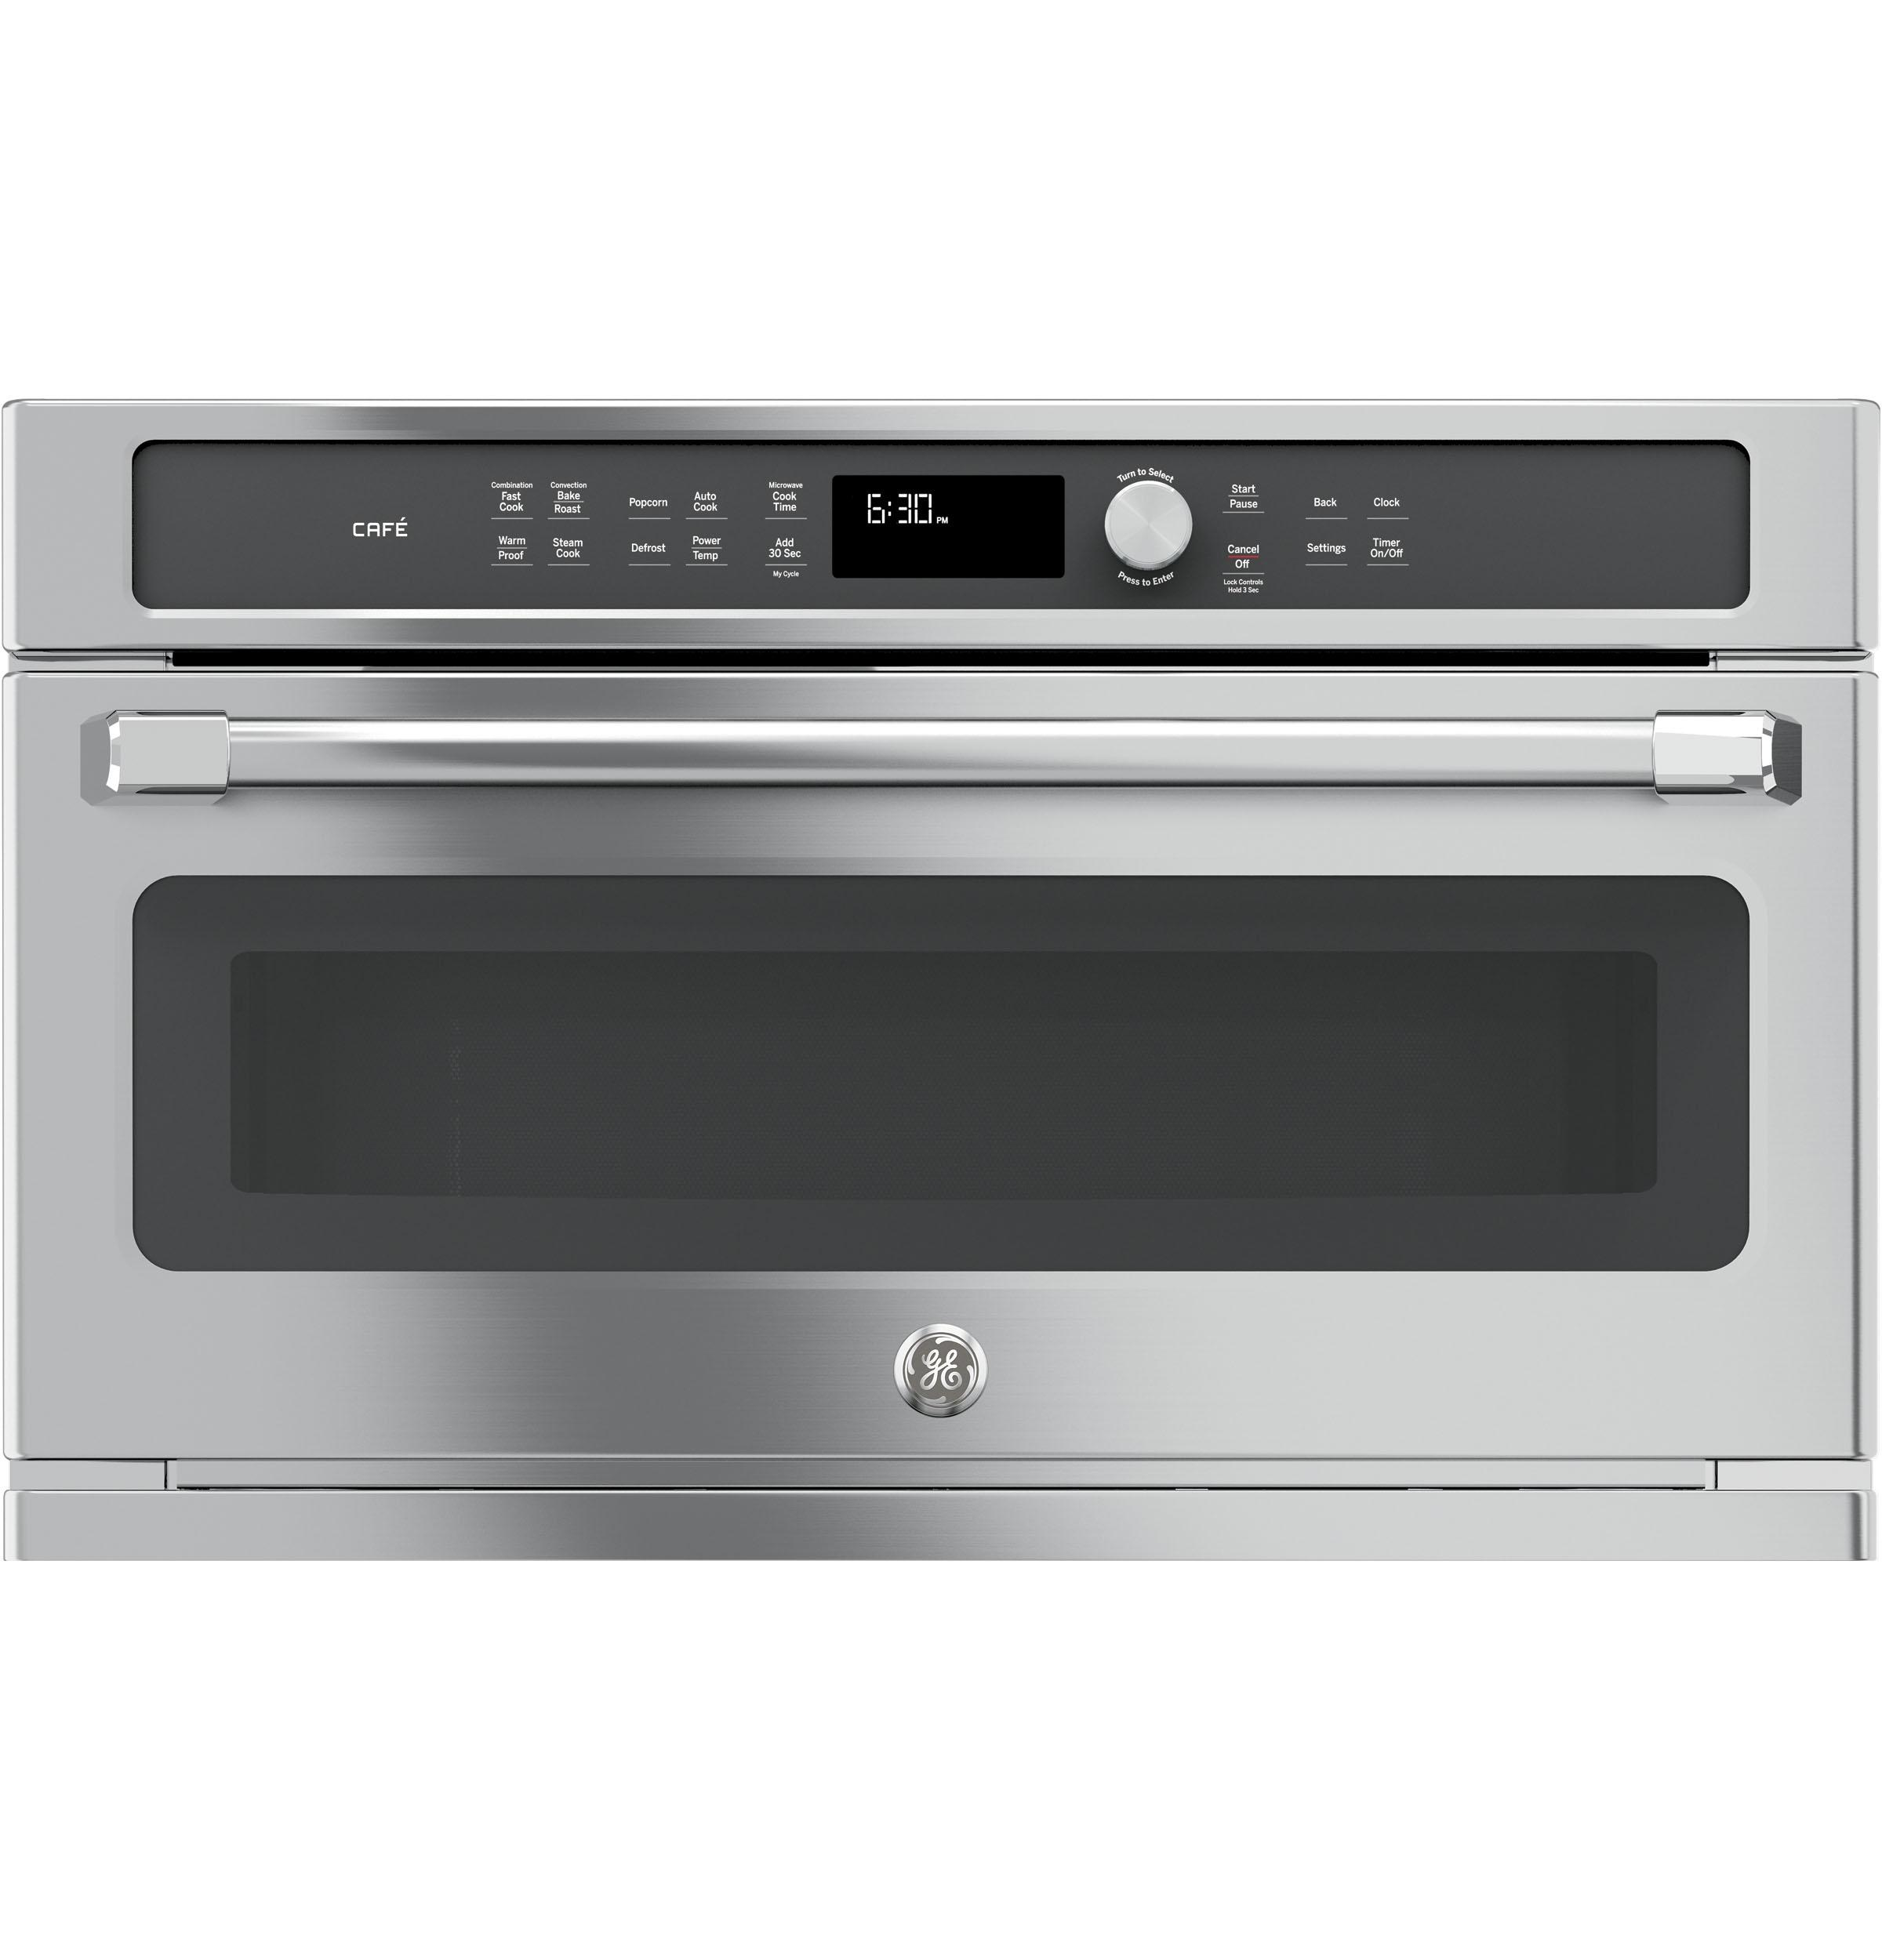 GE Cafe(TM) Series Built-In Microwave/Convection Oven